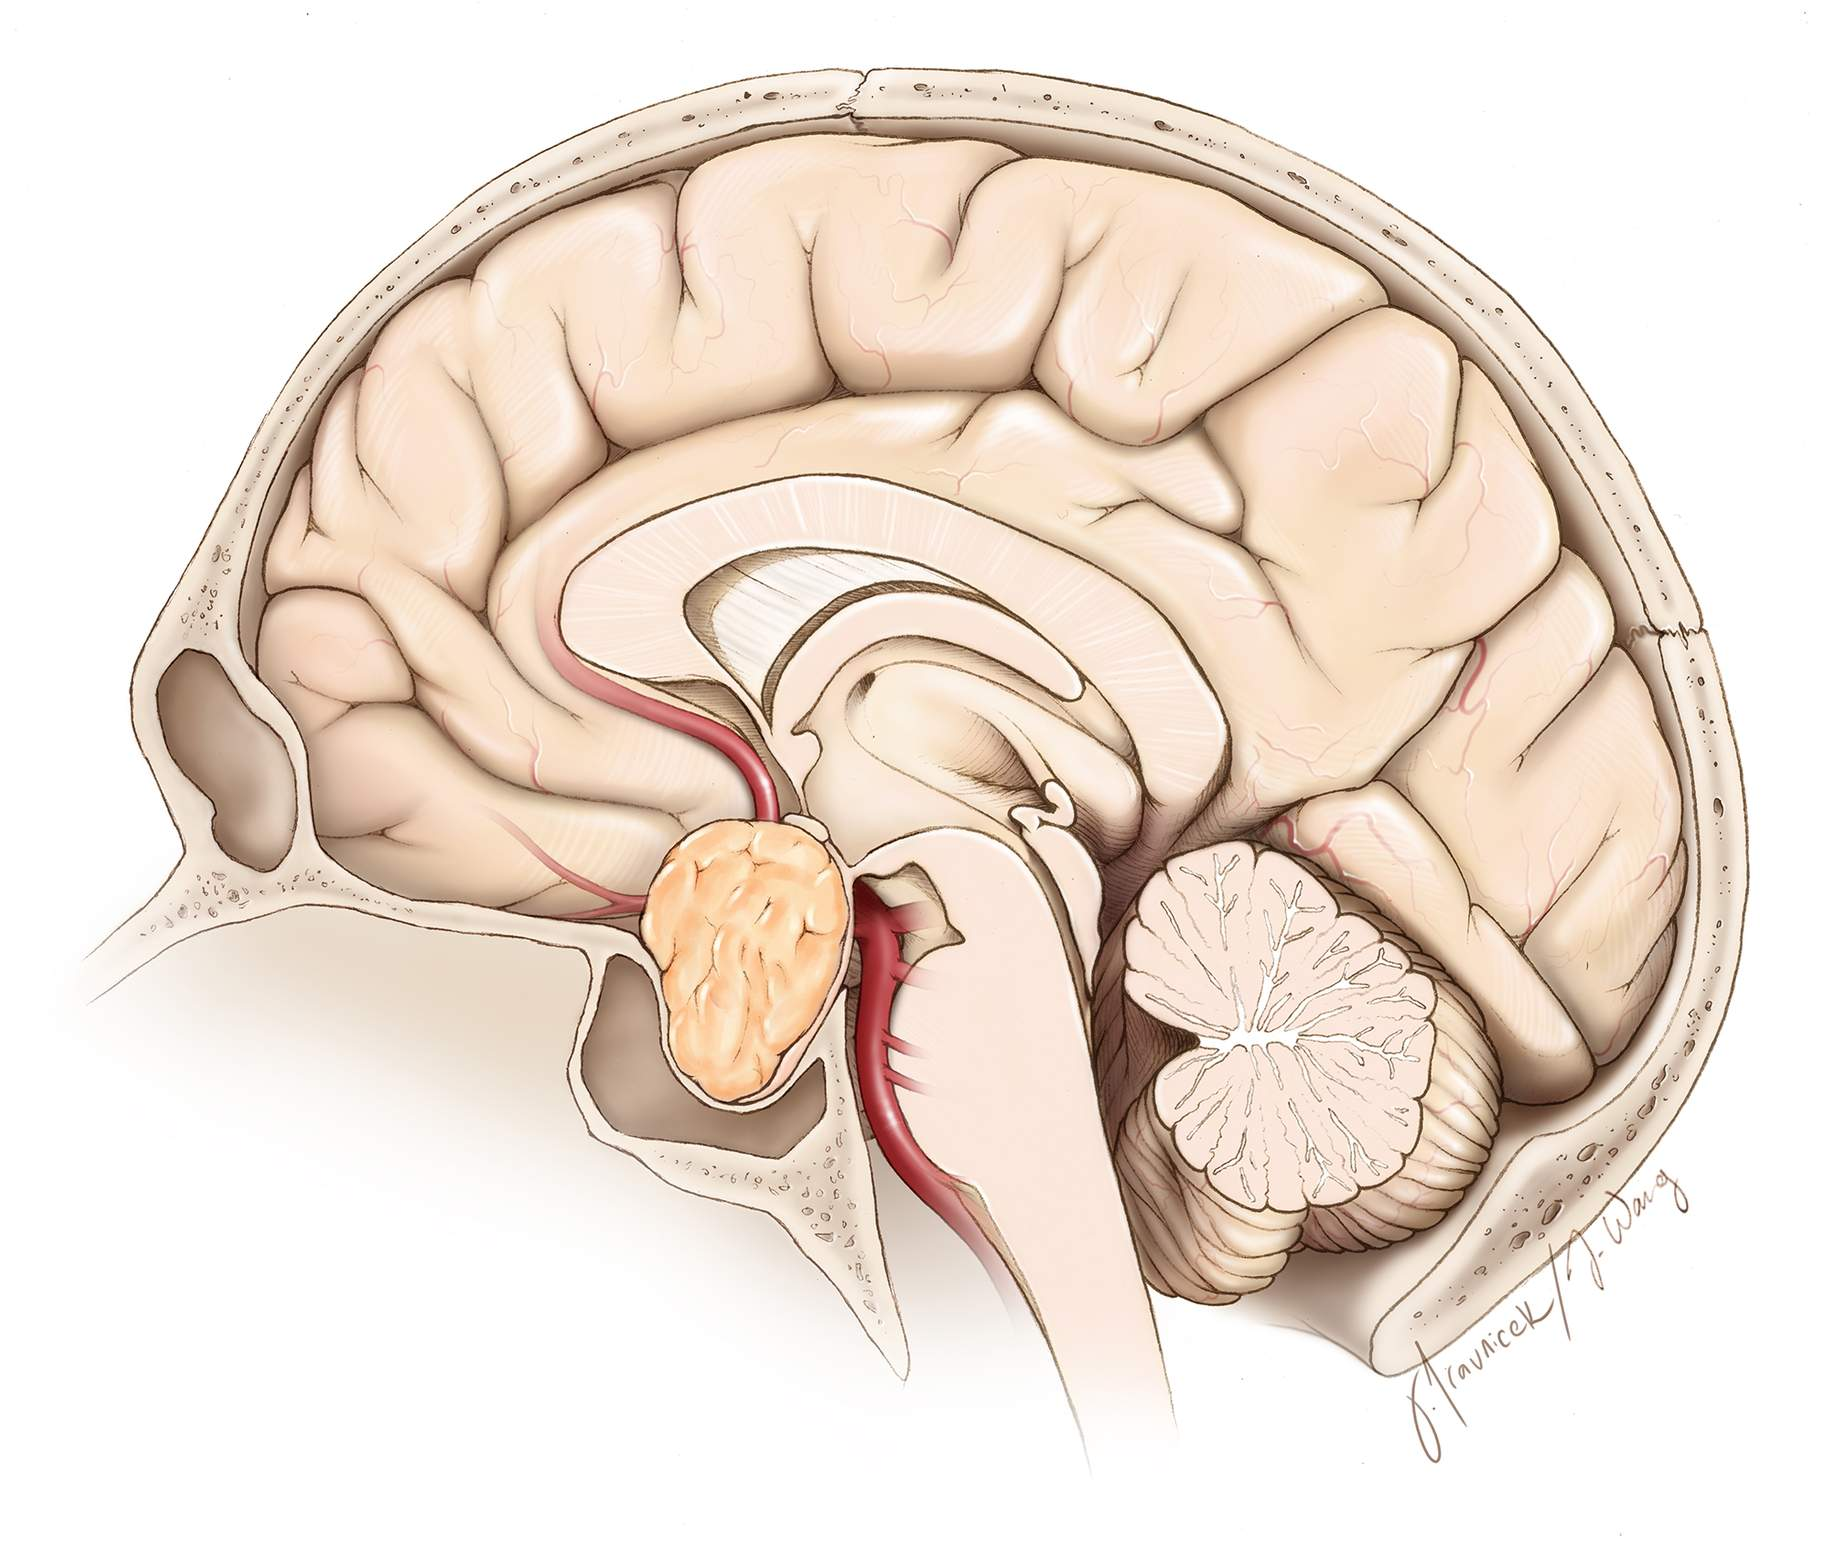 Figure 3: The configuration of a typical pituitary adenoma on a sagittal plane is shown here. Note the location of the compressed pituitary gland in the posterior or superior directions.